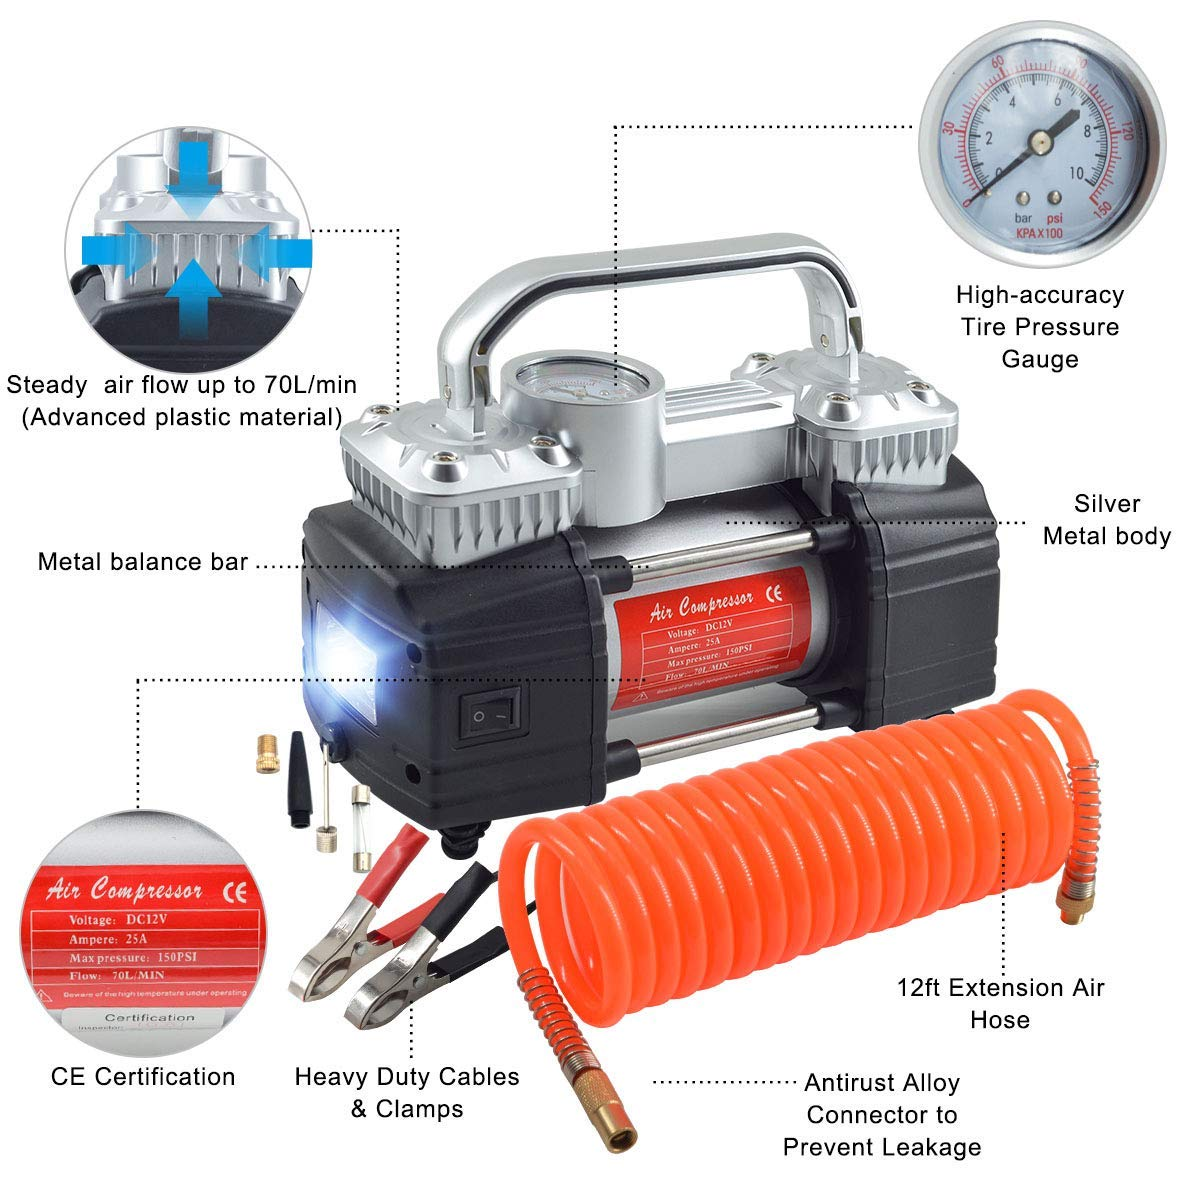 GSPSCN Silver Dual Cylinder Air Compressor, Heavy Duty Portable Tire Inflator 12V 150PSI for Fast Pumping with LED Work Lights by GSPSCN (Image #2)